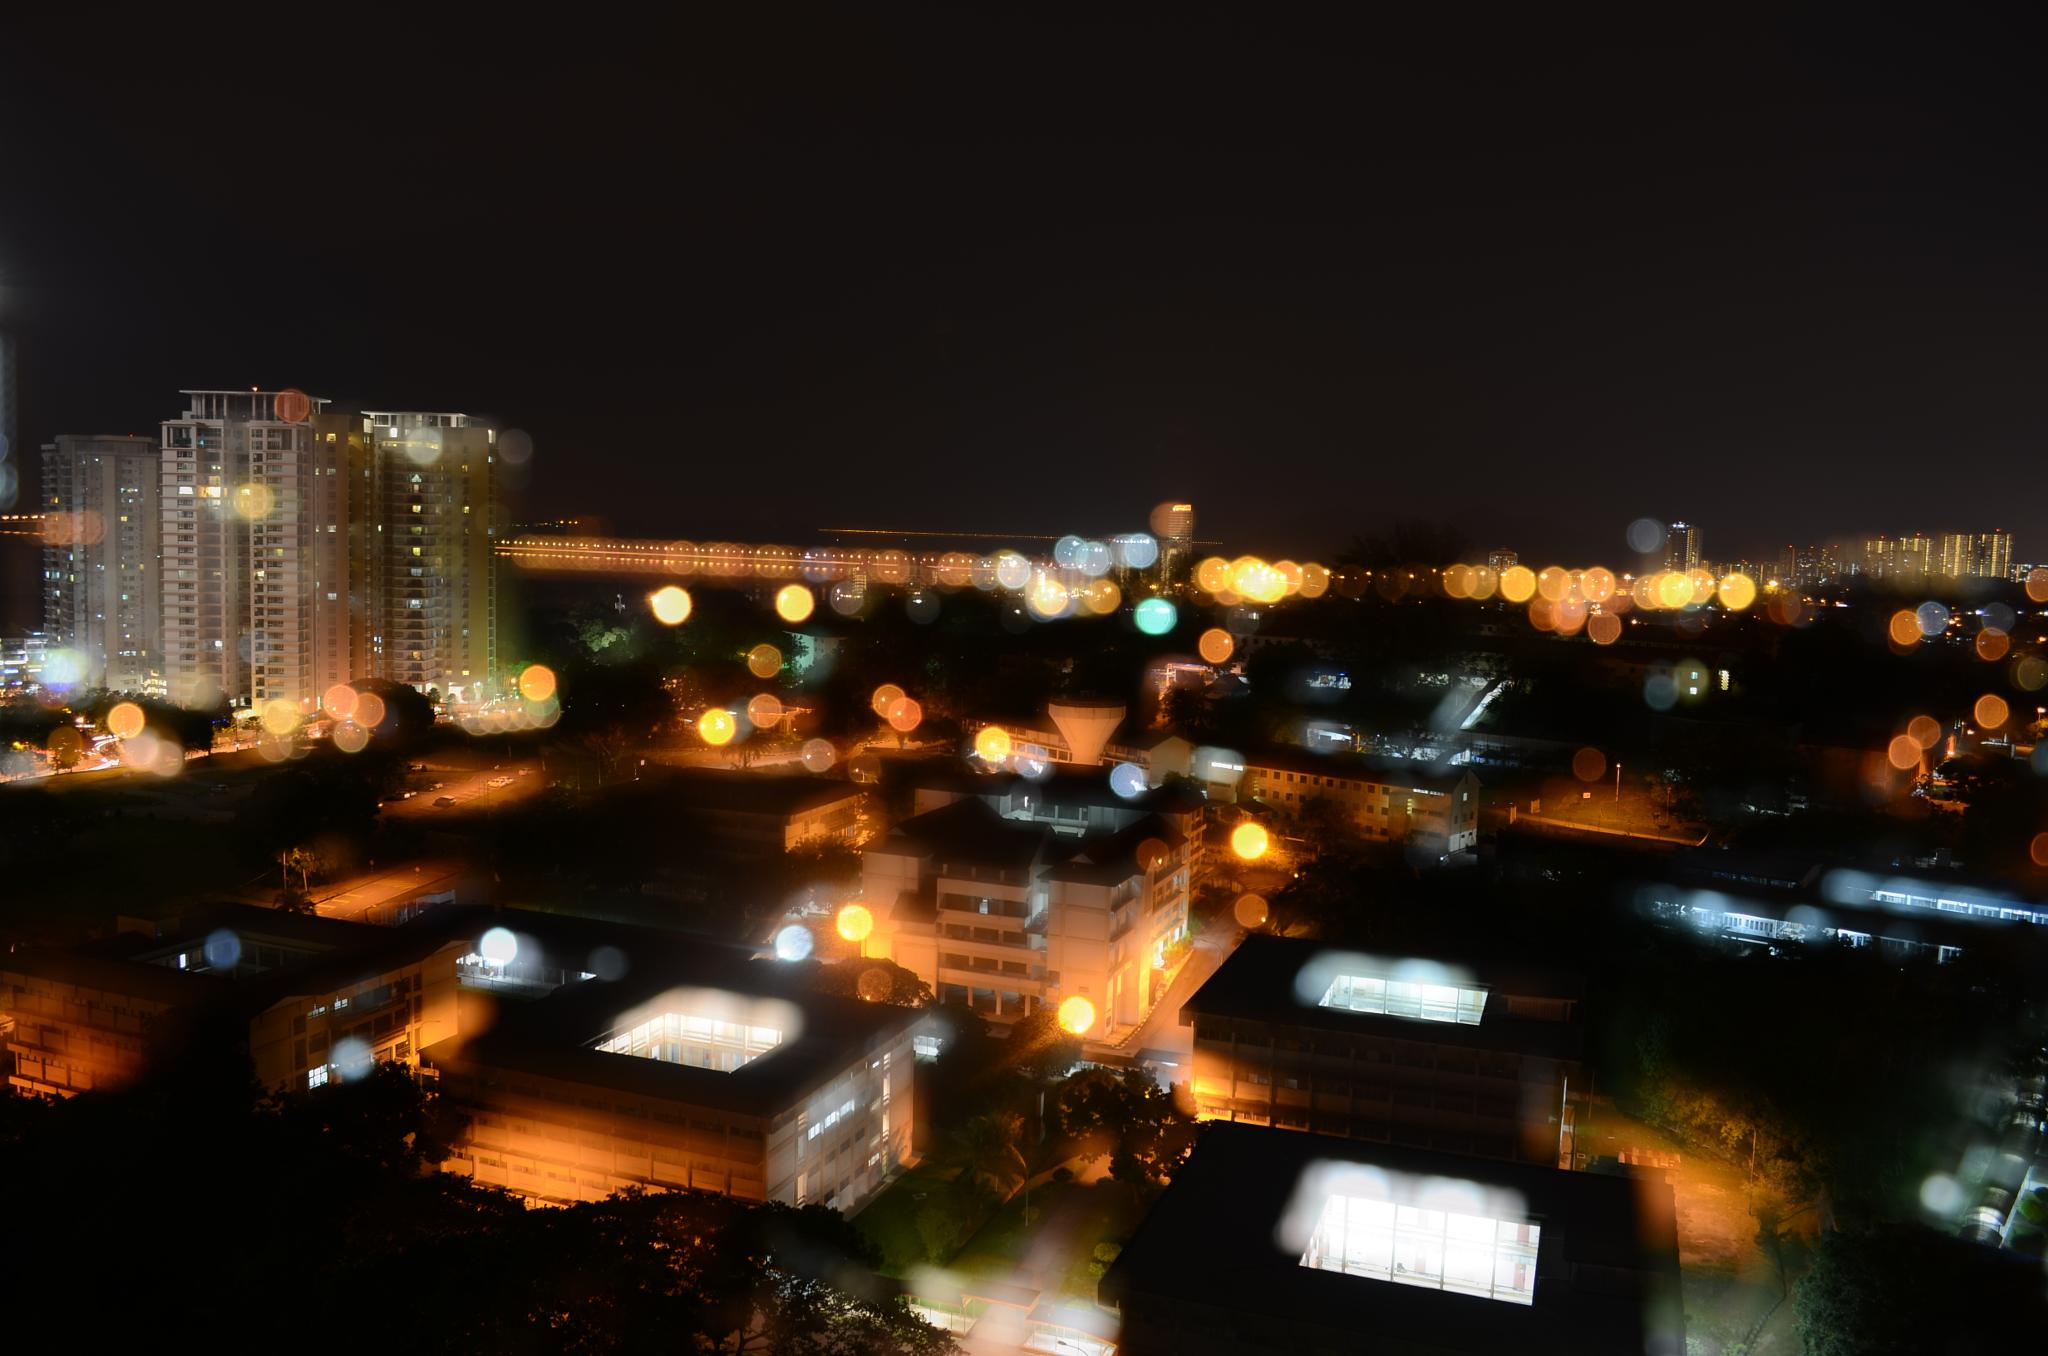 Penang cityscapes by wooyuenfoo